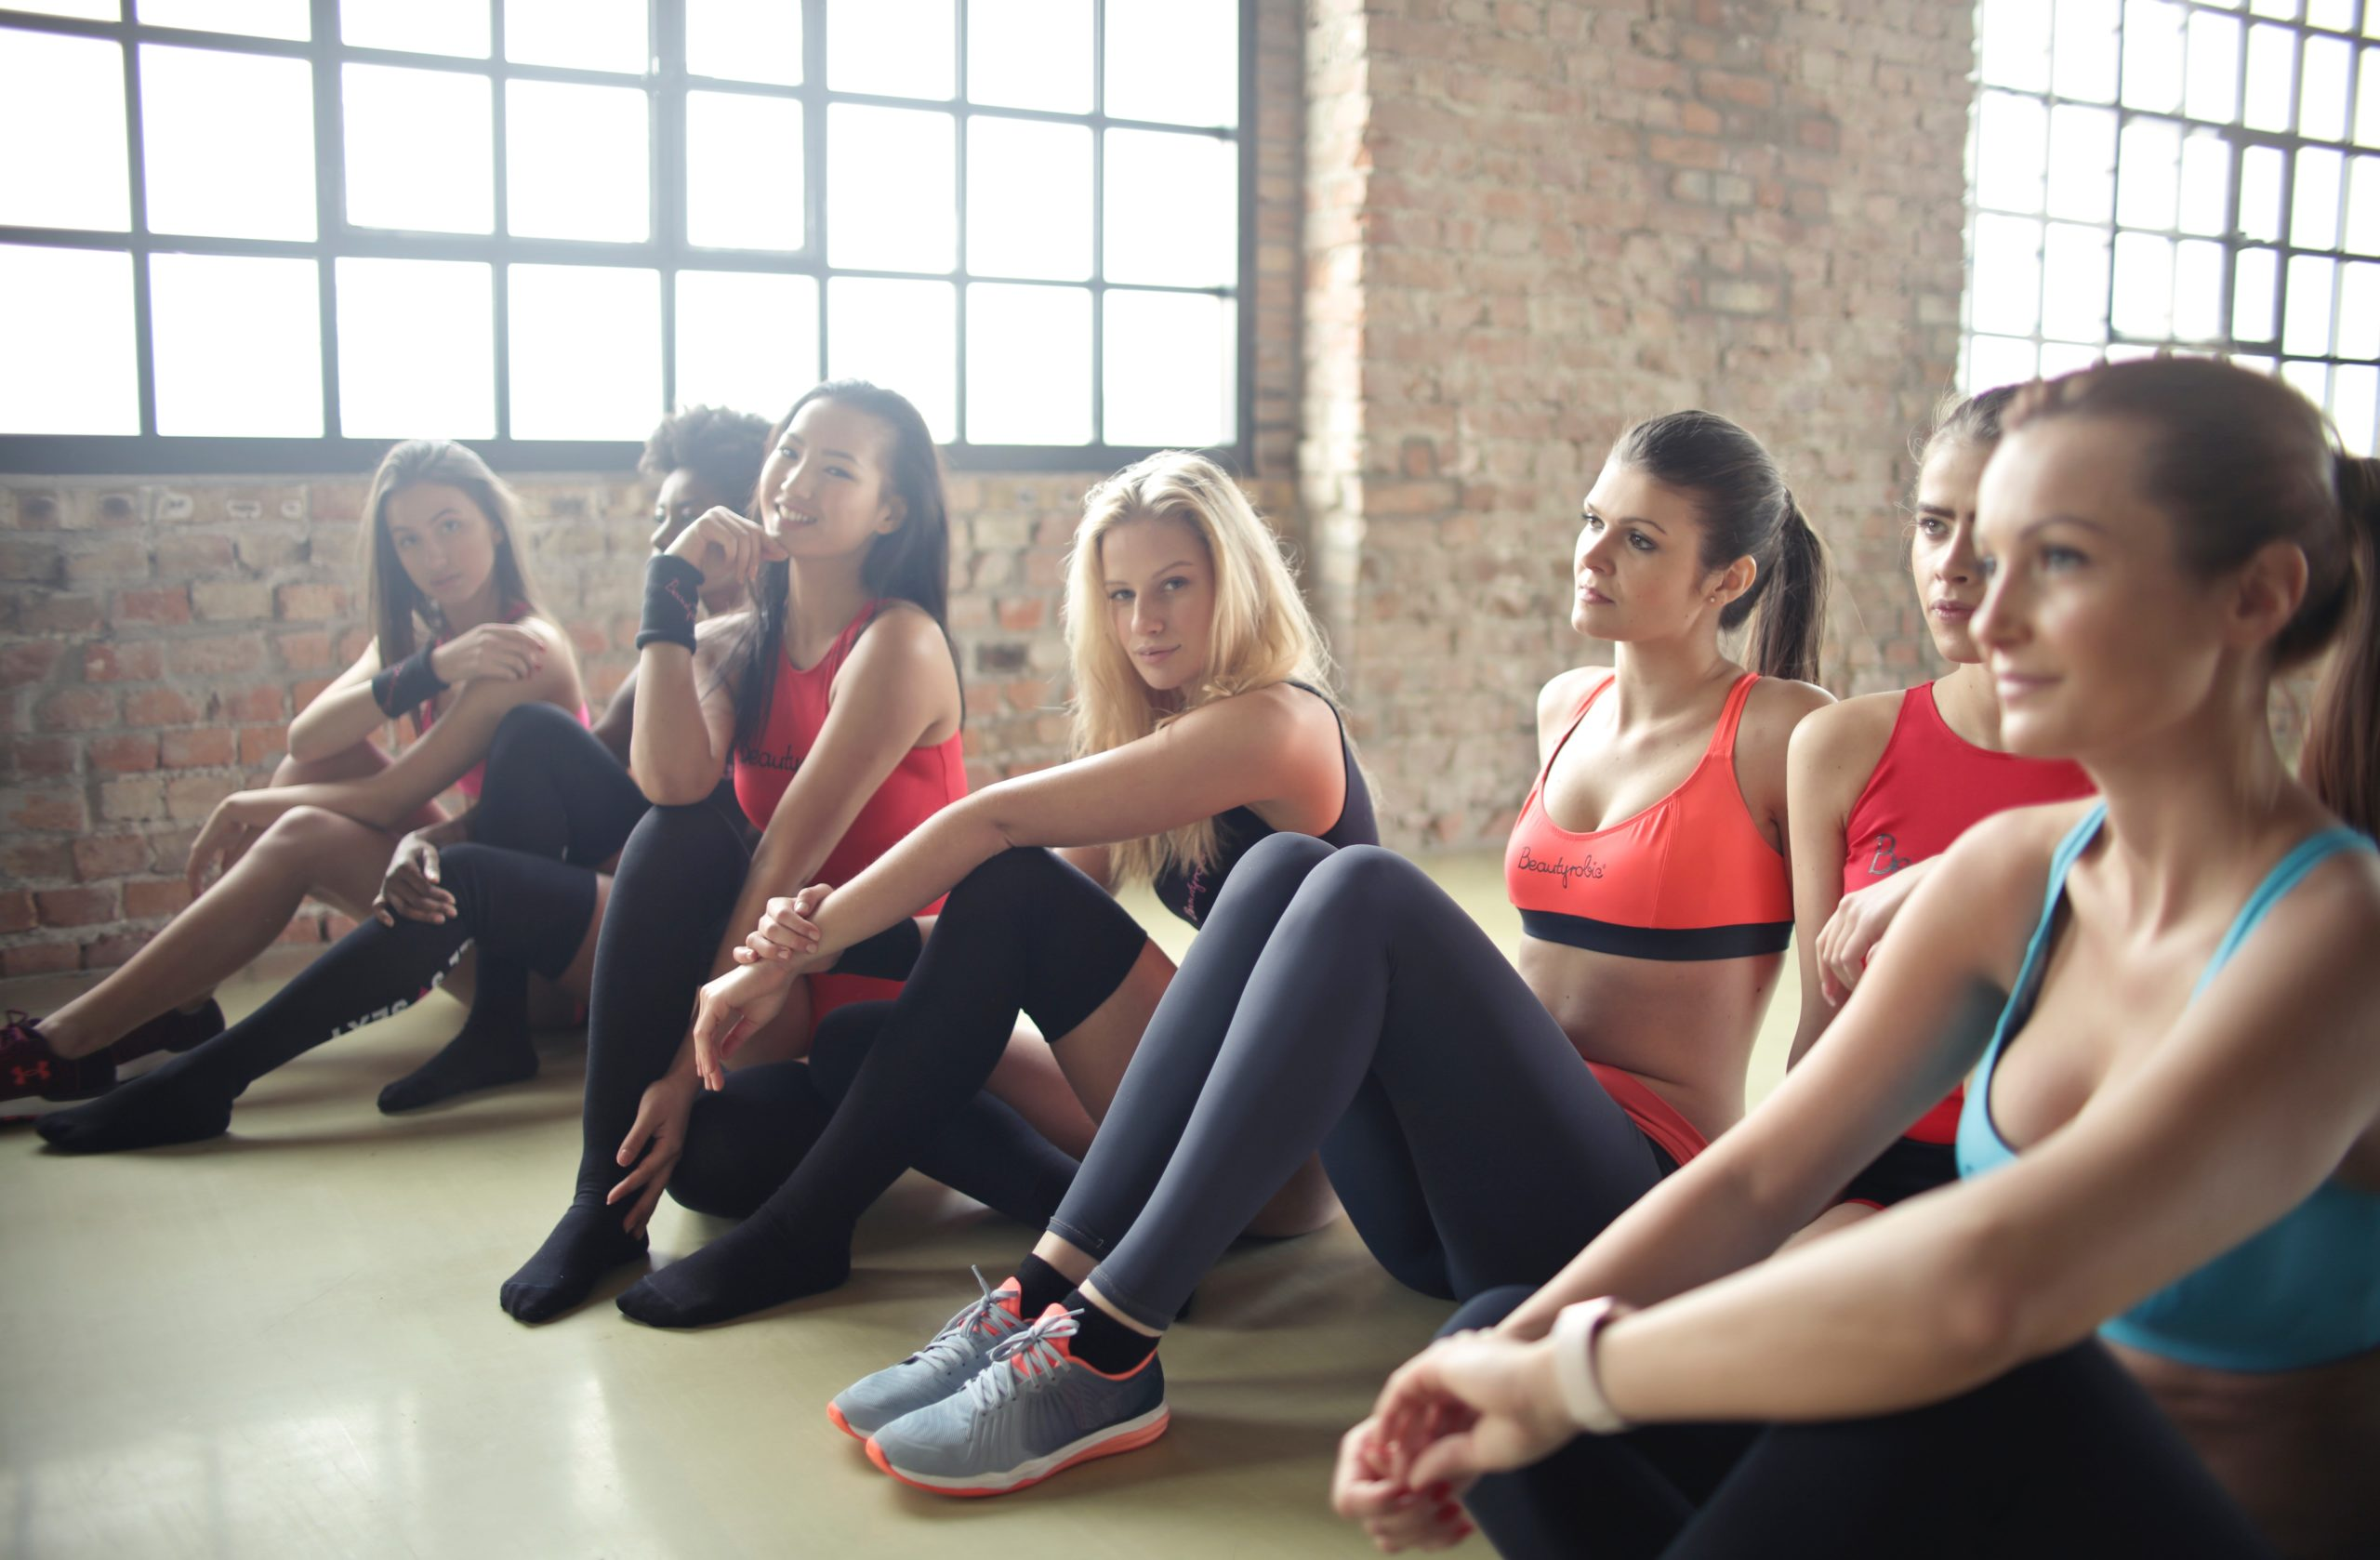 Pilates Tops: Tips To Choose The Right One